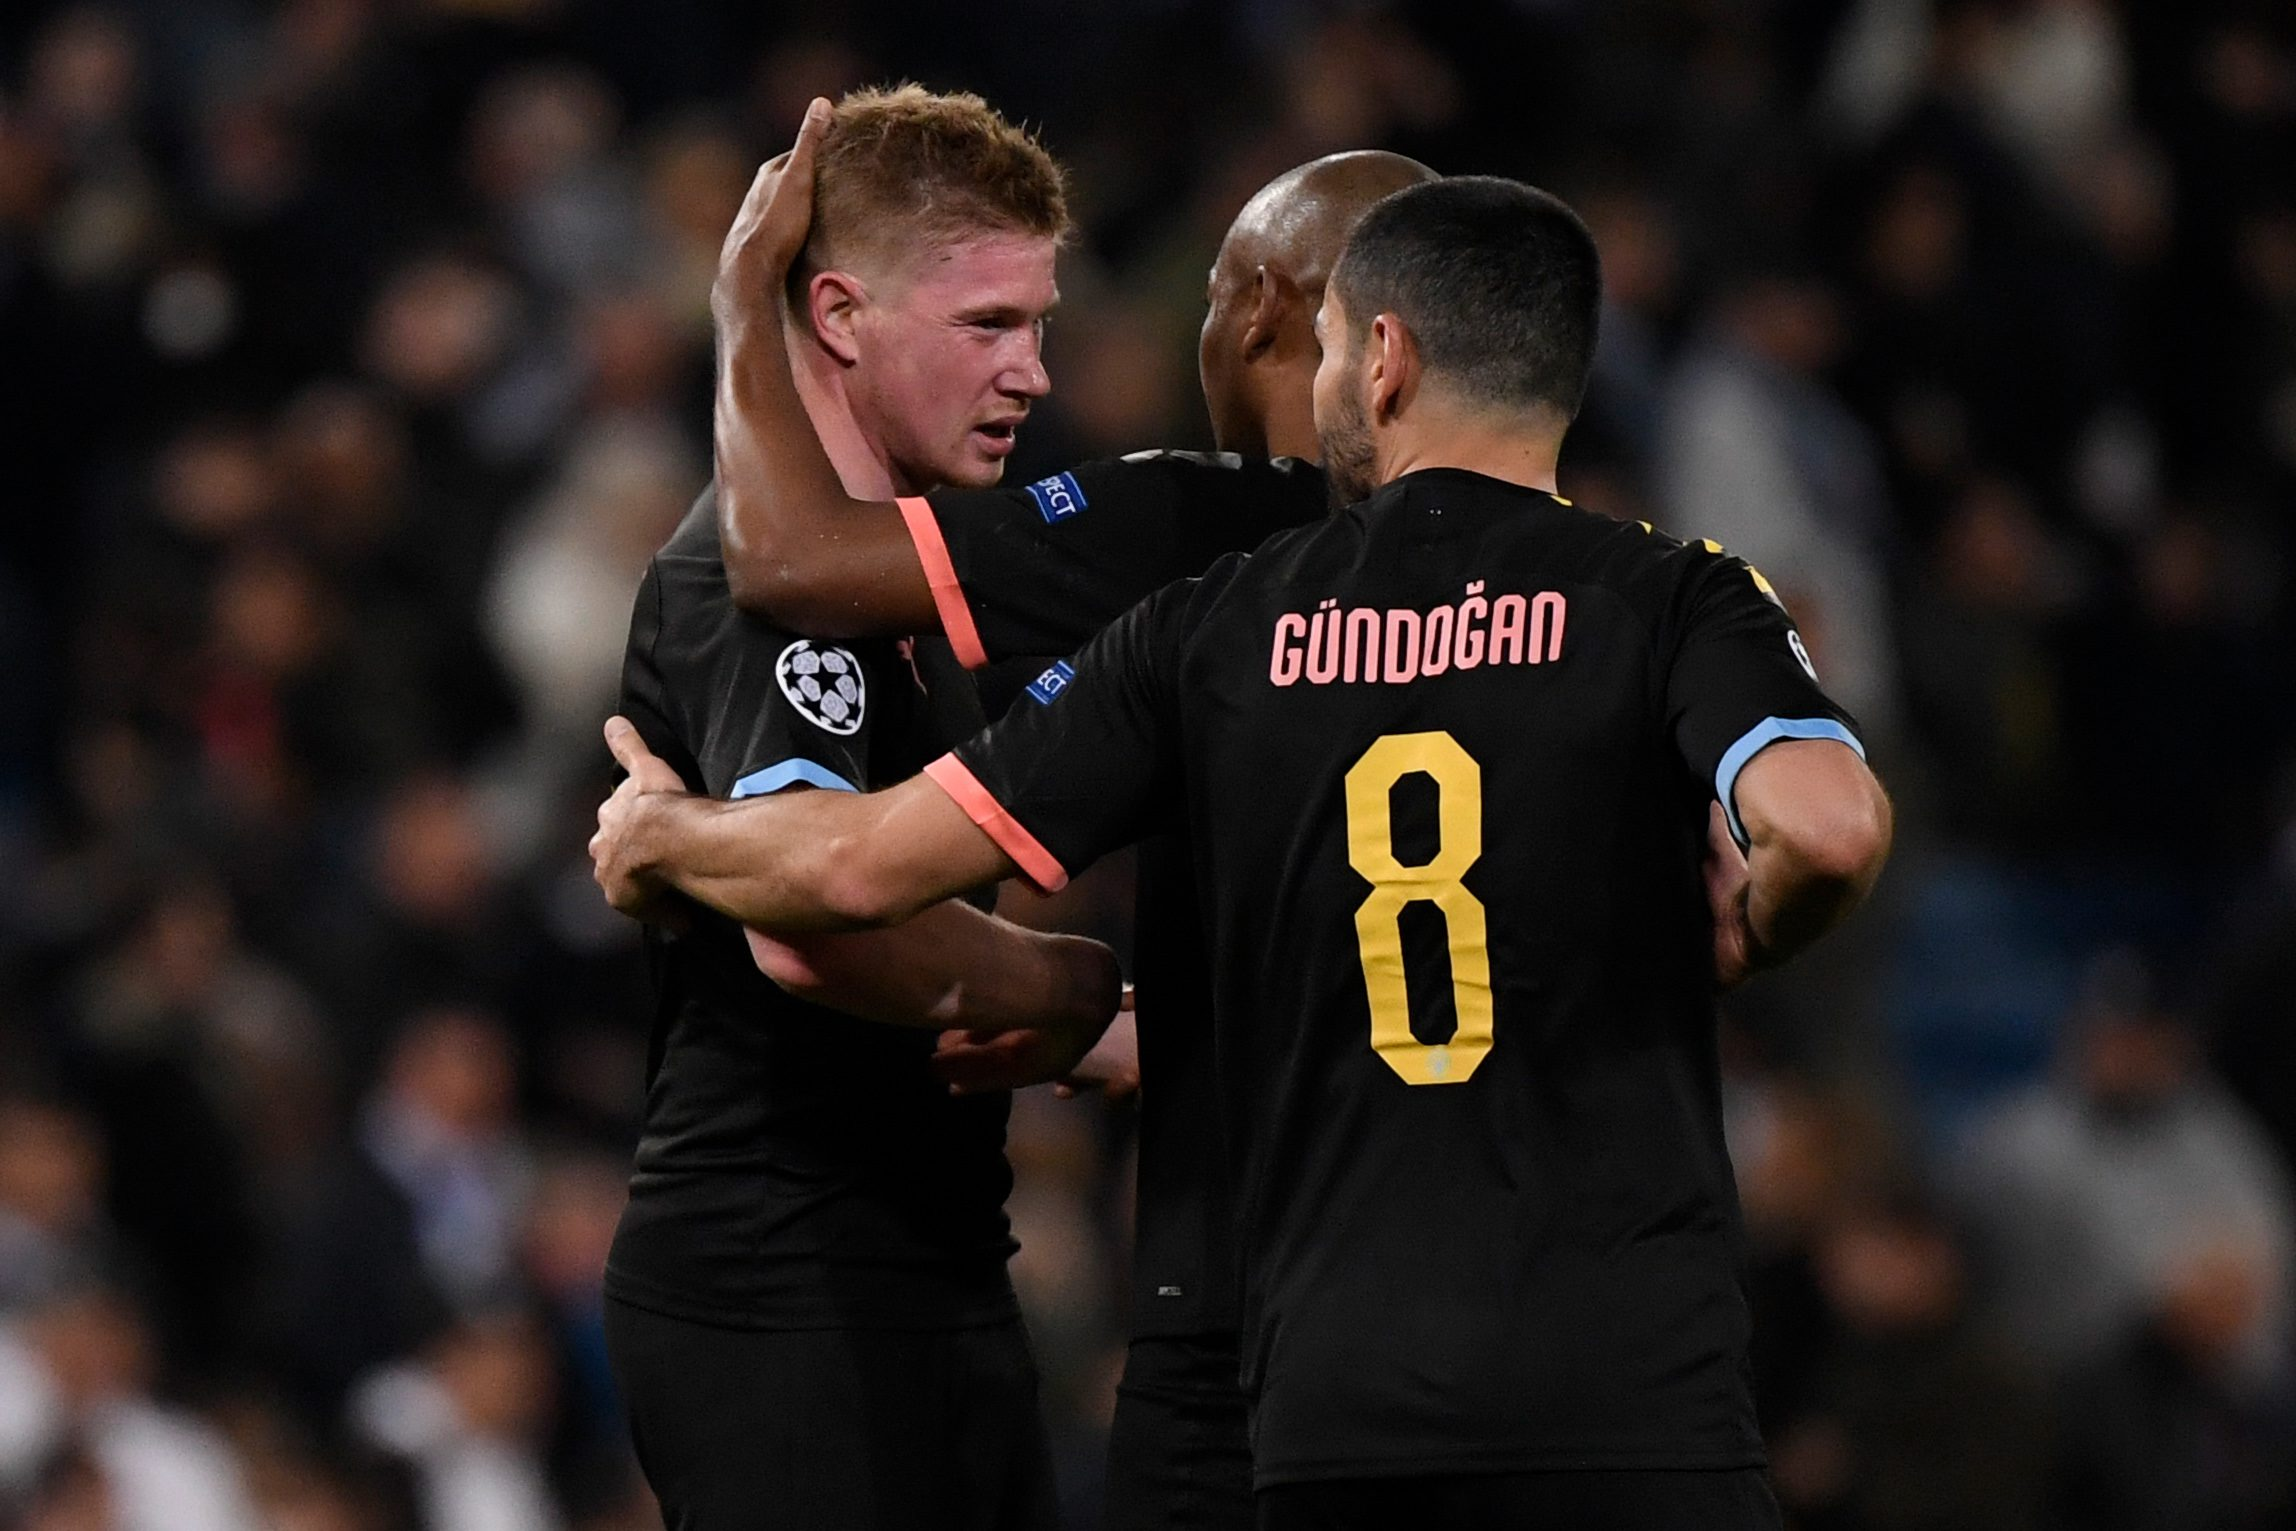 Manchester City's Belgian midfielder Kevin De Bruyne (L) and teammates celebrate their win at the end of the UEFA Champions League round of 16 first-leg football match between Real Madrid CF and Manchester City at the Santiago Bernabeu stadium in Madrid on February 26, 2020. (Photo by PIERRE-PHILIPPE MARCOU / AFP)